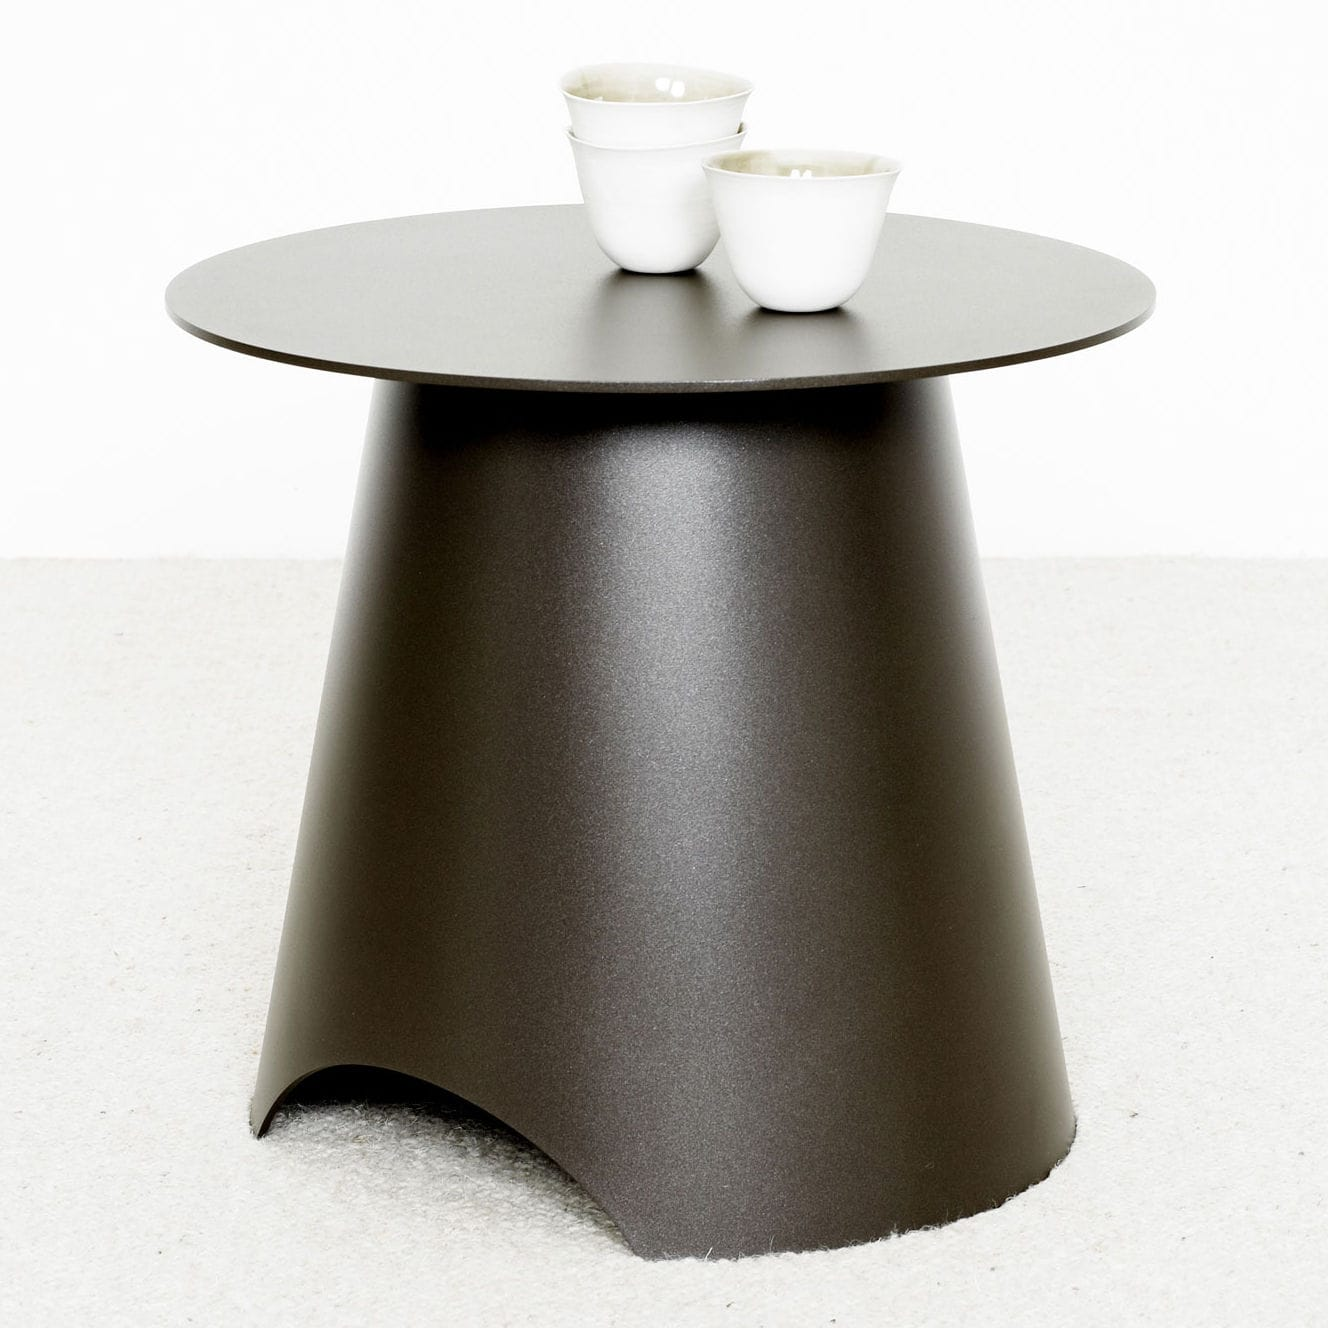 contemporary side table  metal  round  max  christophe delcourt - contemporary side table  metal  round  max